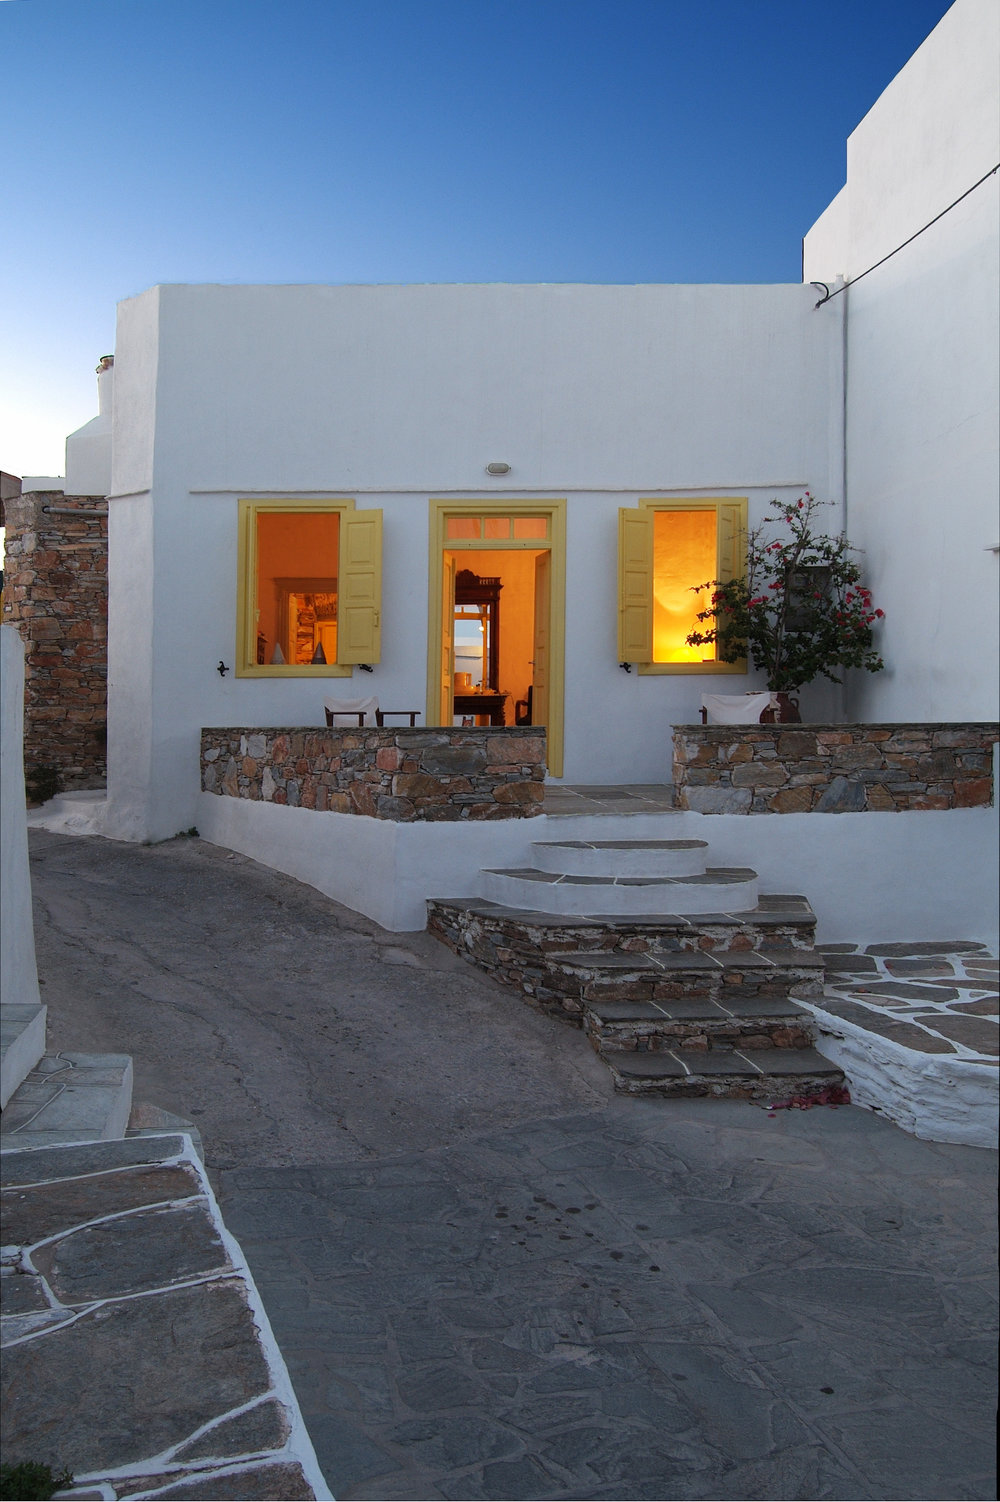 Front entrance of Theocharopoulou's Sifnos home after the renovation. Courtesy of the author.